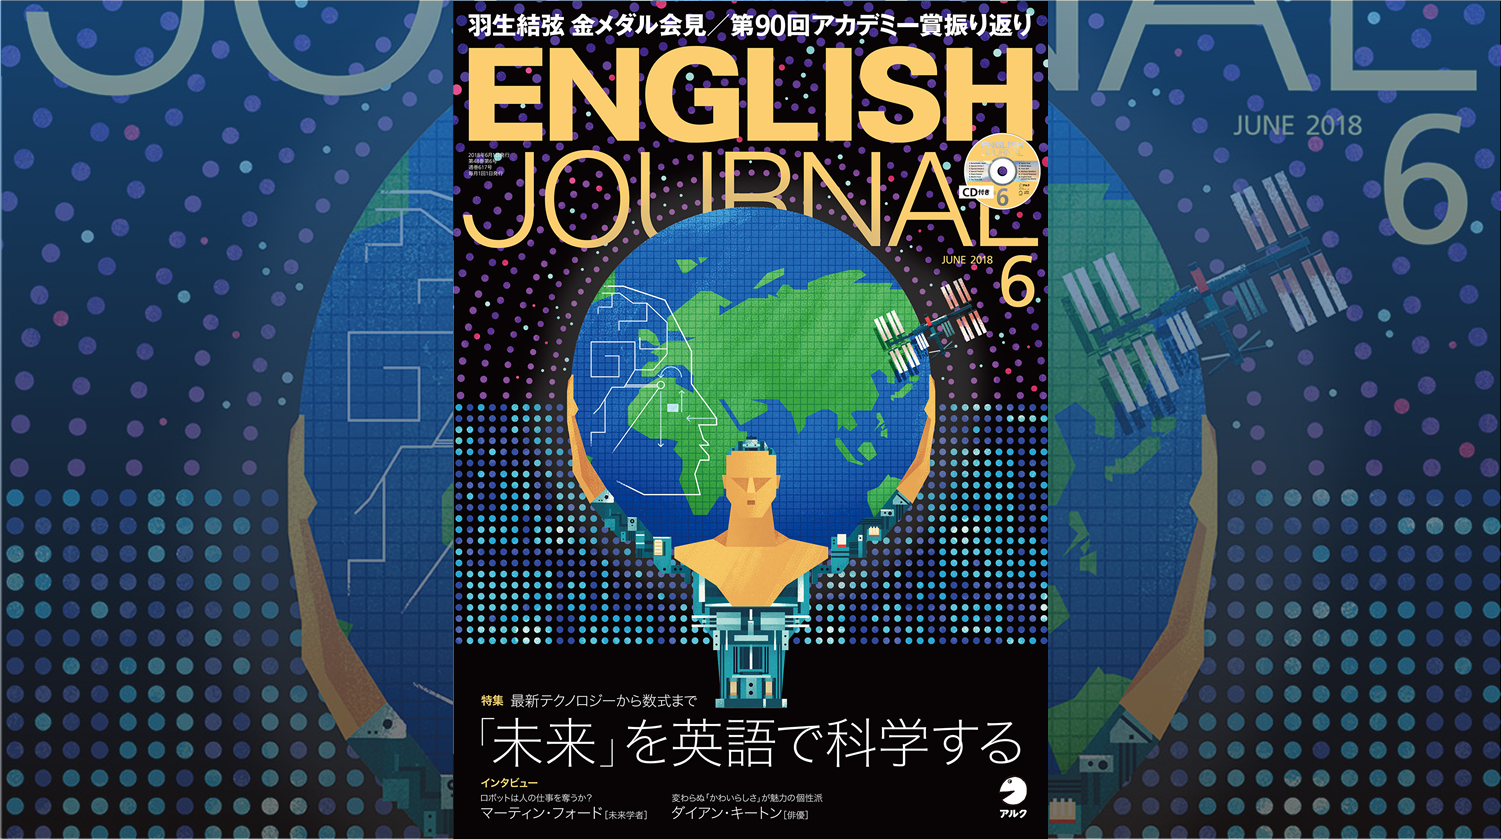 『ENGLISH JOURNAL』6月号